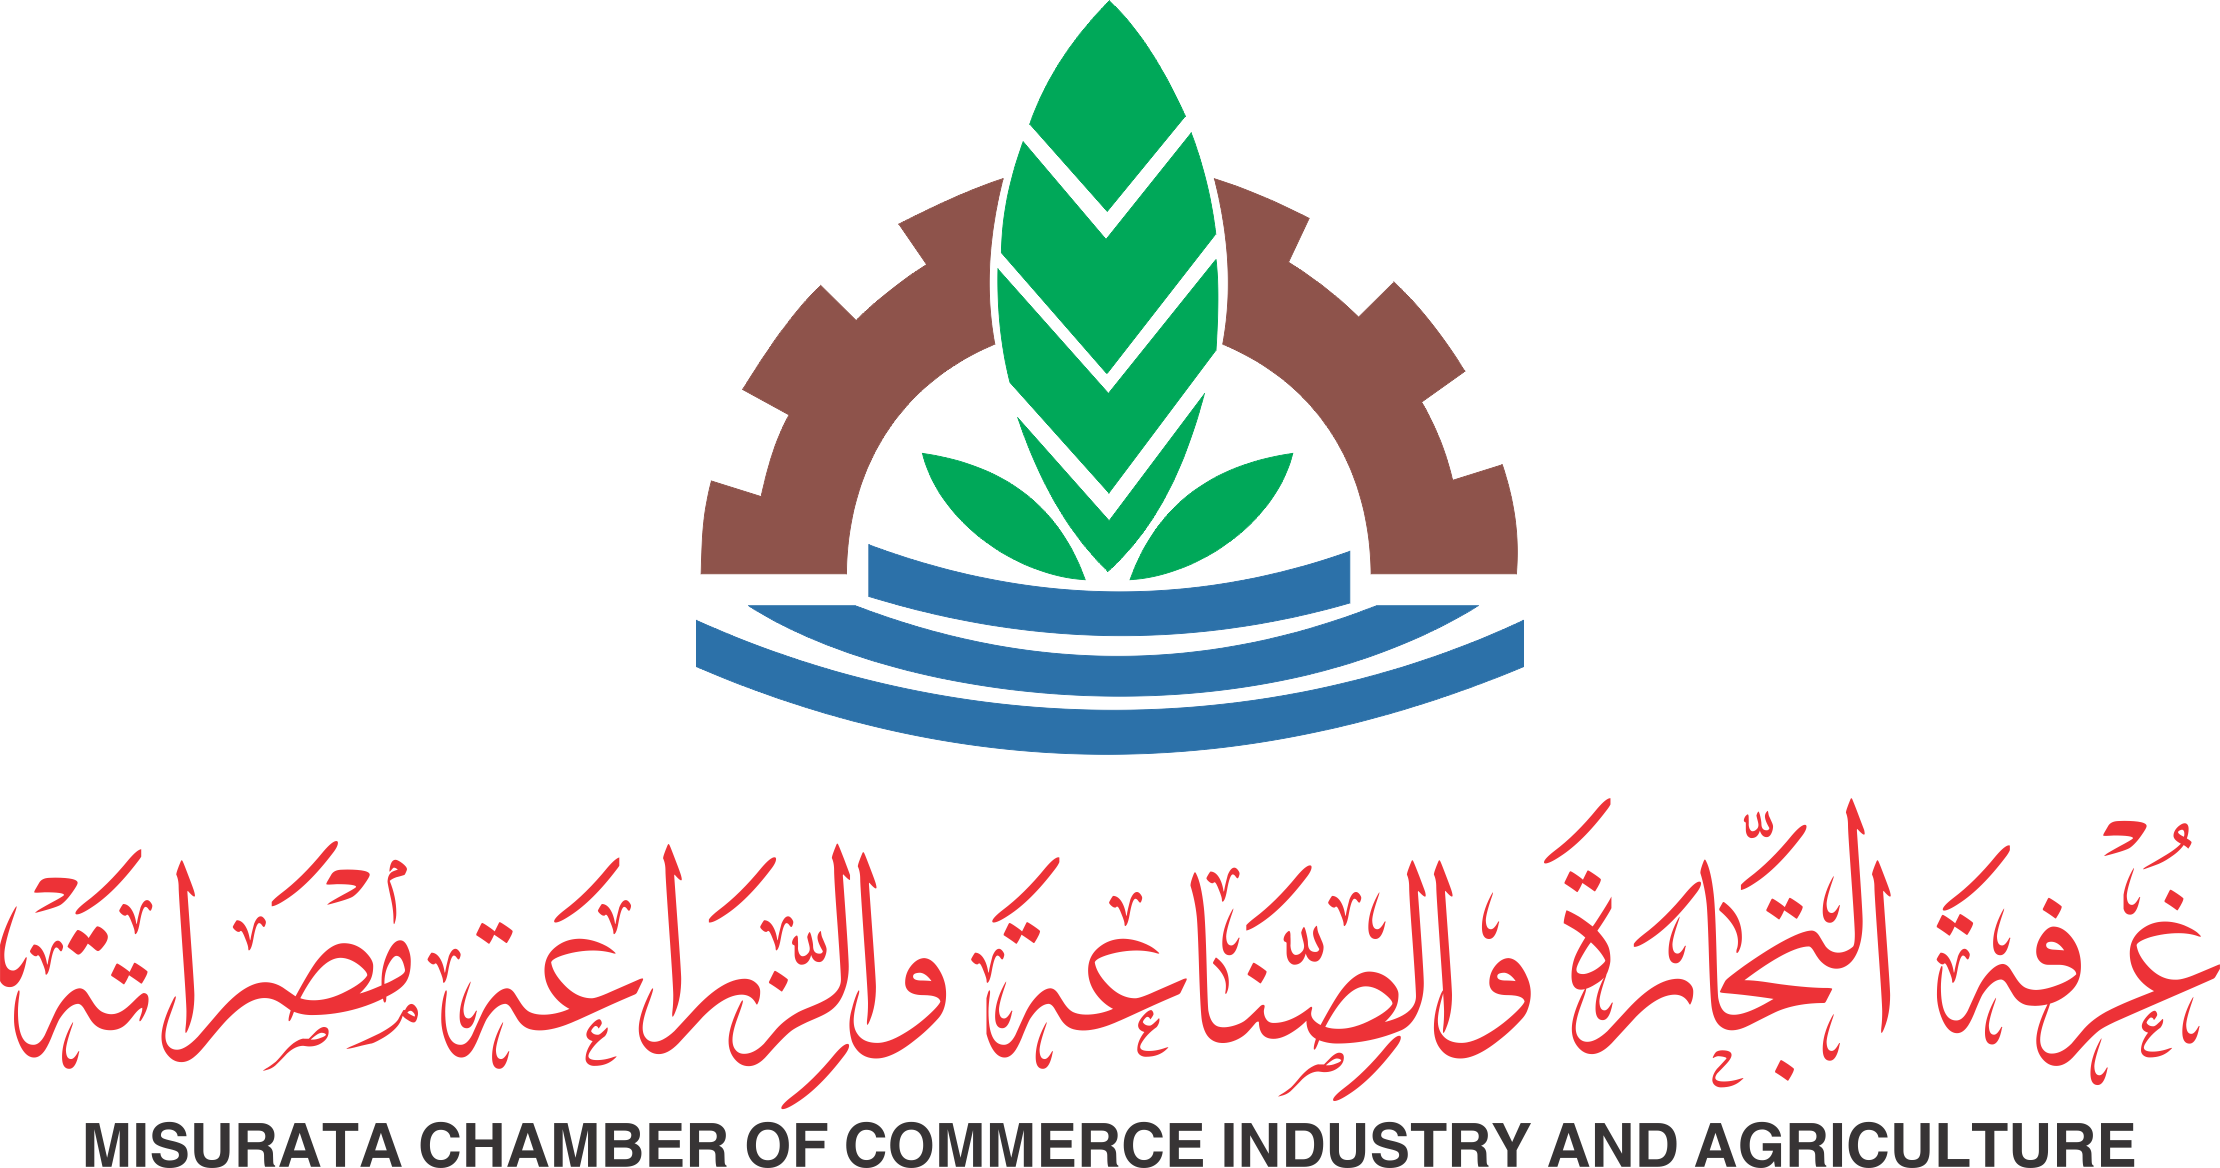 Chamber of Commerce, Agriculture and Industry Misurata